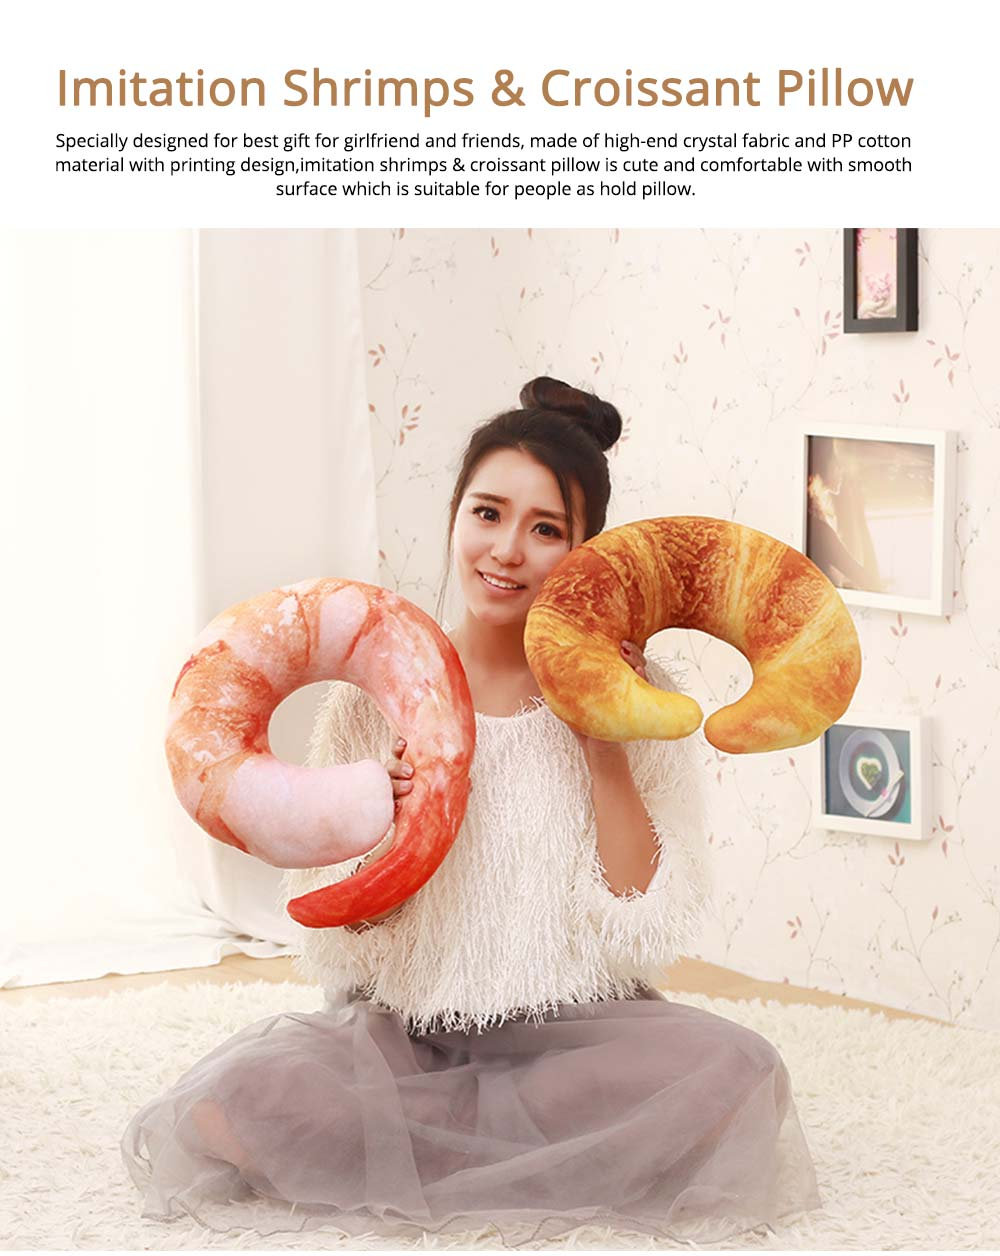 Imitation Shrimps & Croissant Pillow, Creative Birthday Gifts with Special 3D Effect, Printing Cotton Pillow 0